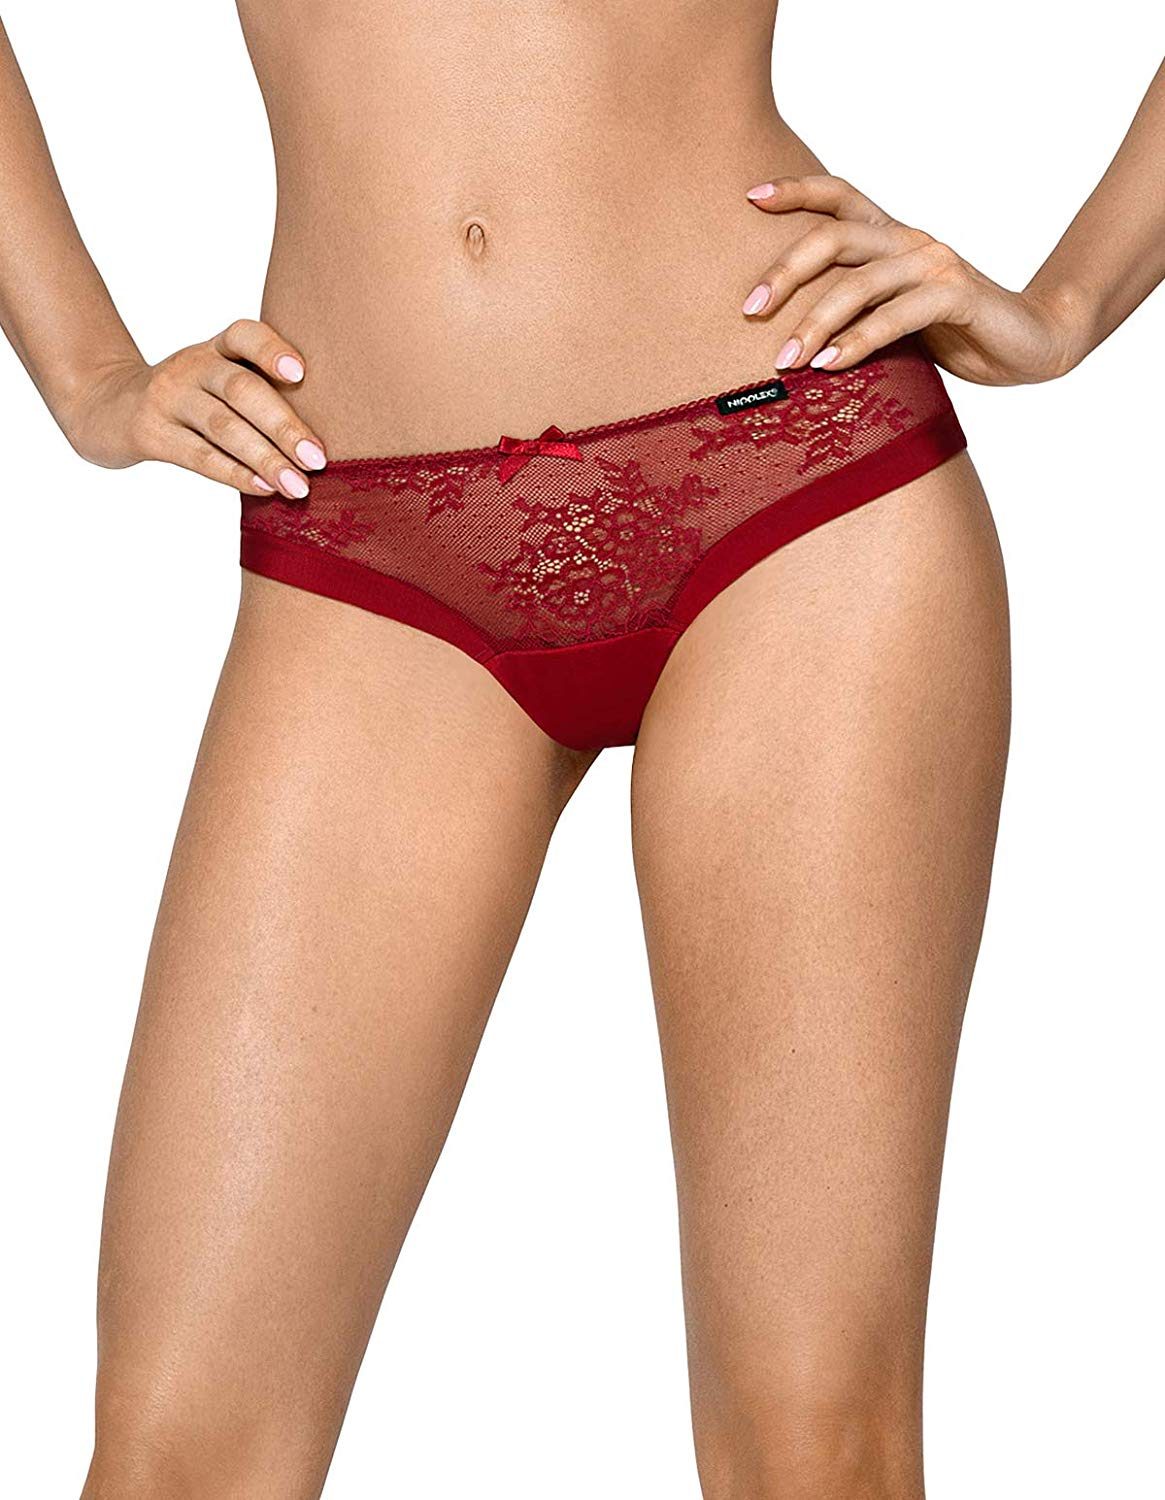 43bf96f0391c Get Quotations · Nipplex Women's Isabelle Maroon Red Lace Panty Thong